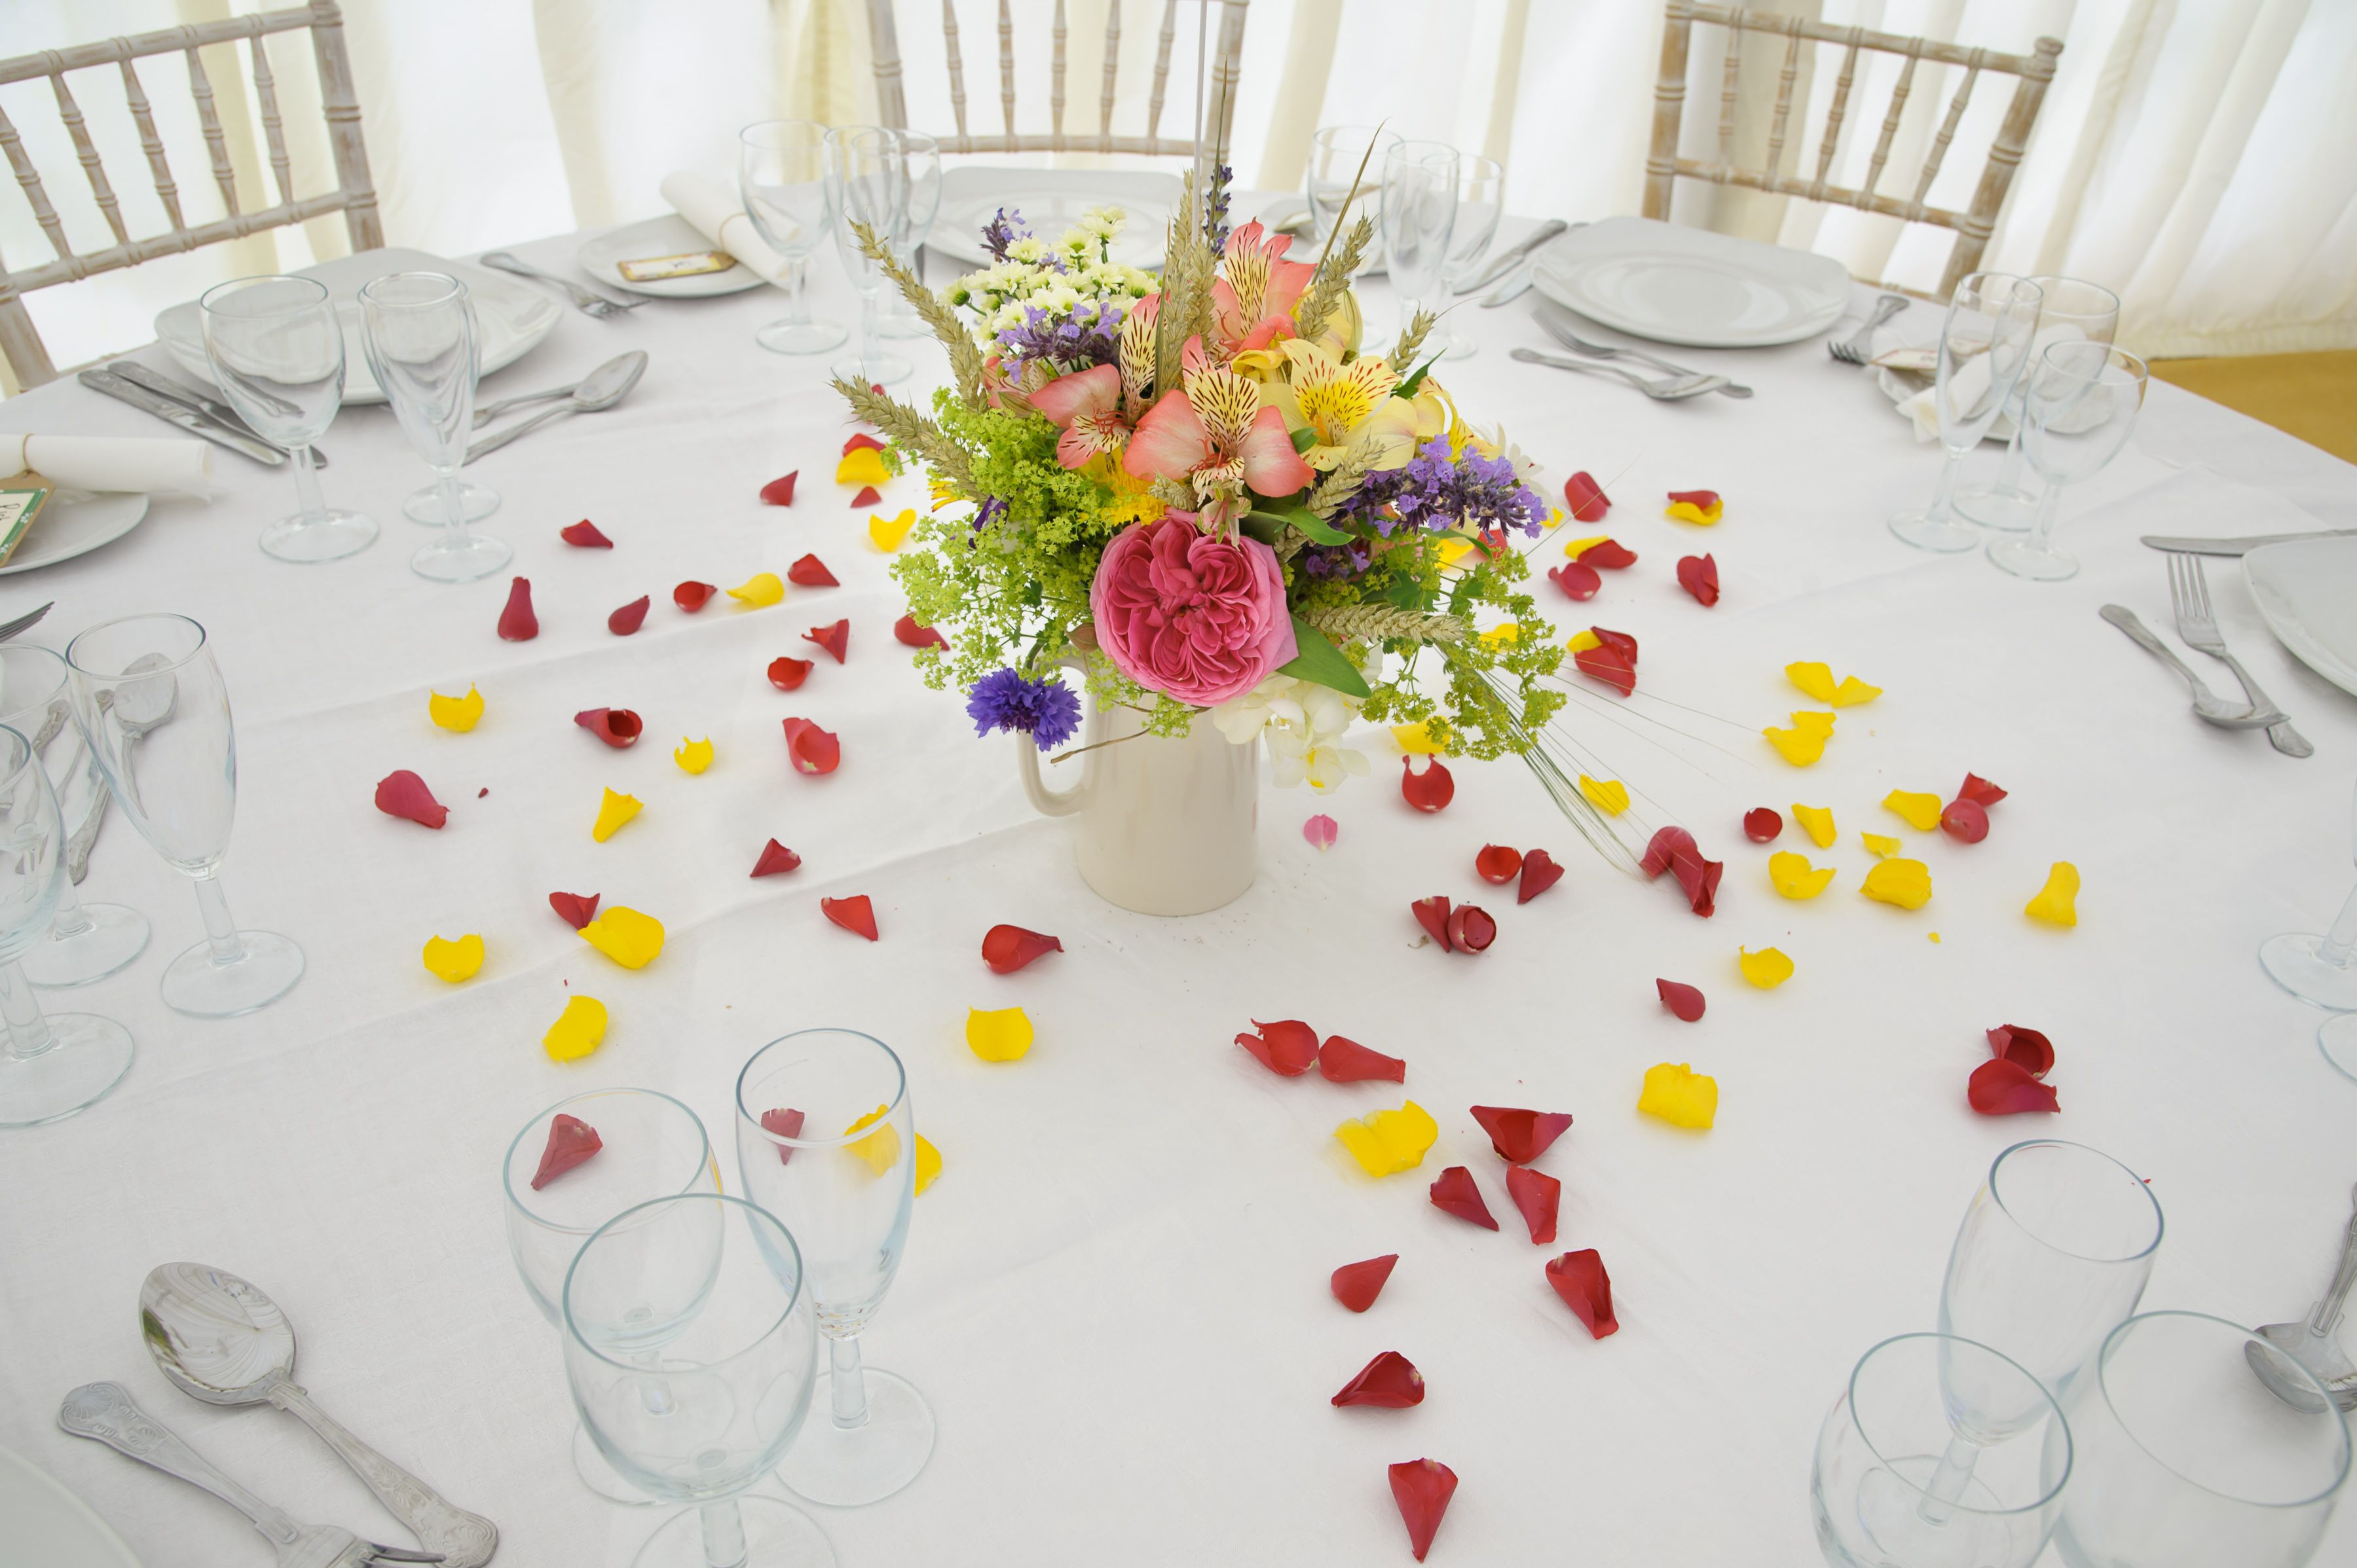 Larger Petals Are Perfect As Table Confetti Create A Beautiful For That Special Moment